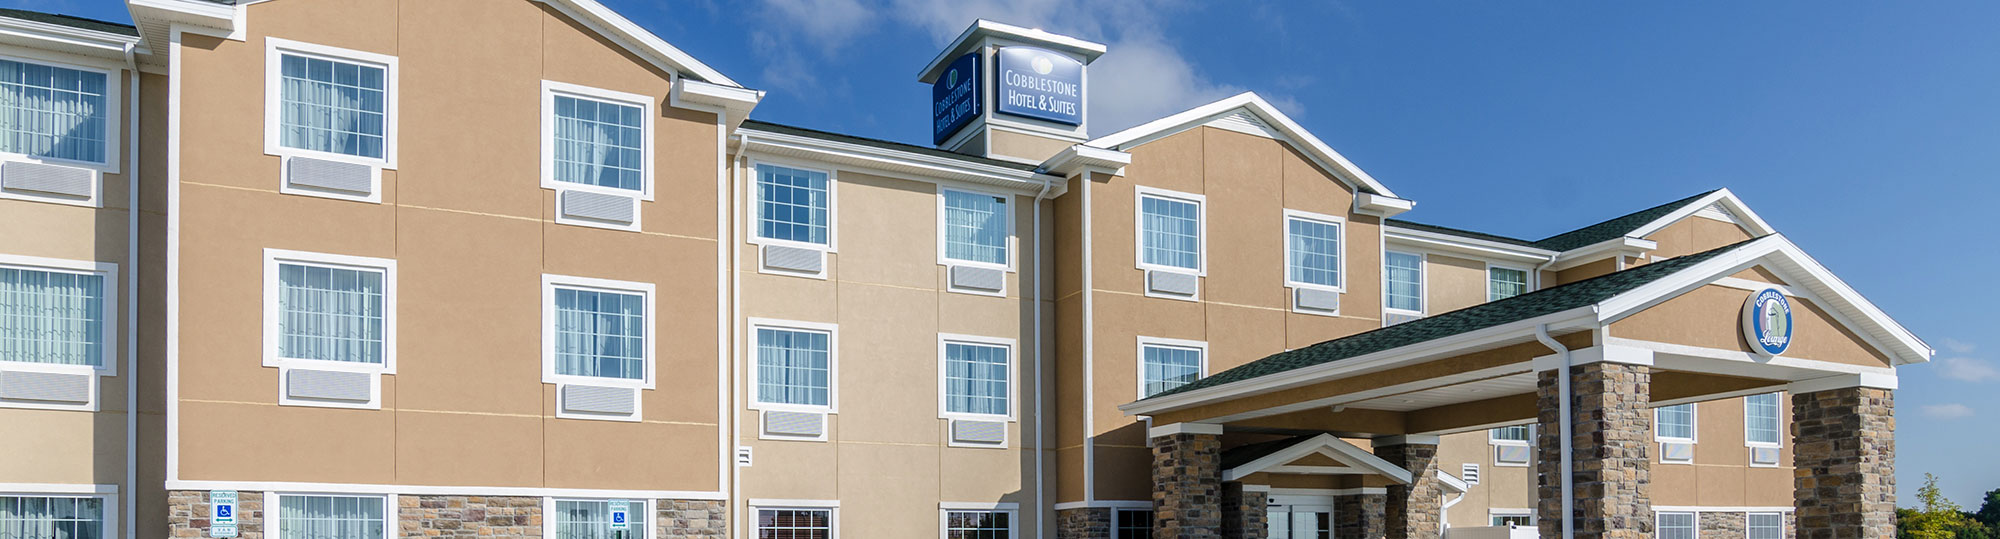 Cobblestone Hotel and Suites Urbana